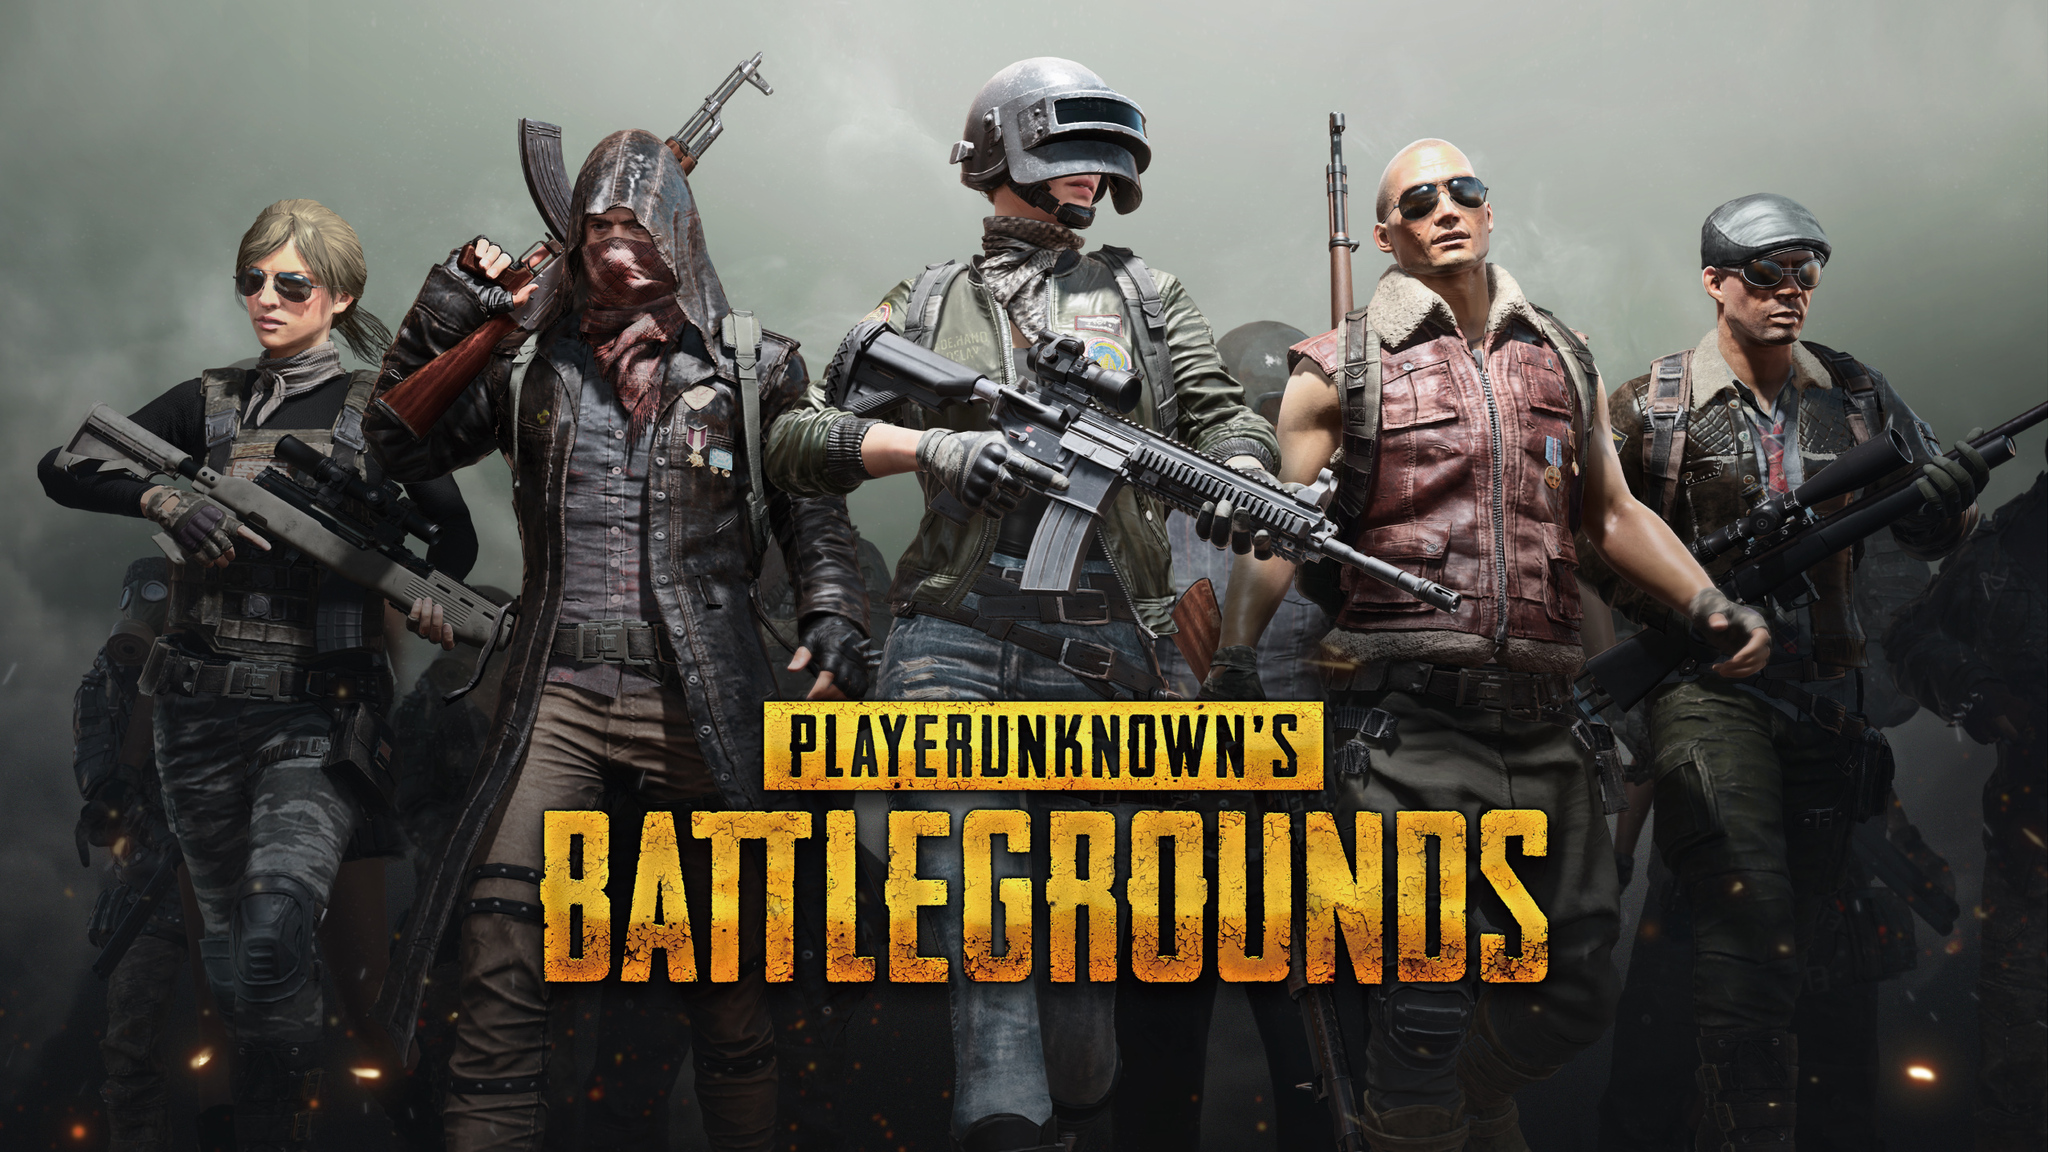 2048x1152 2018 4k Playerunknowns Battlegrounds 2048x1152